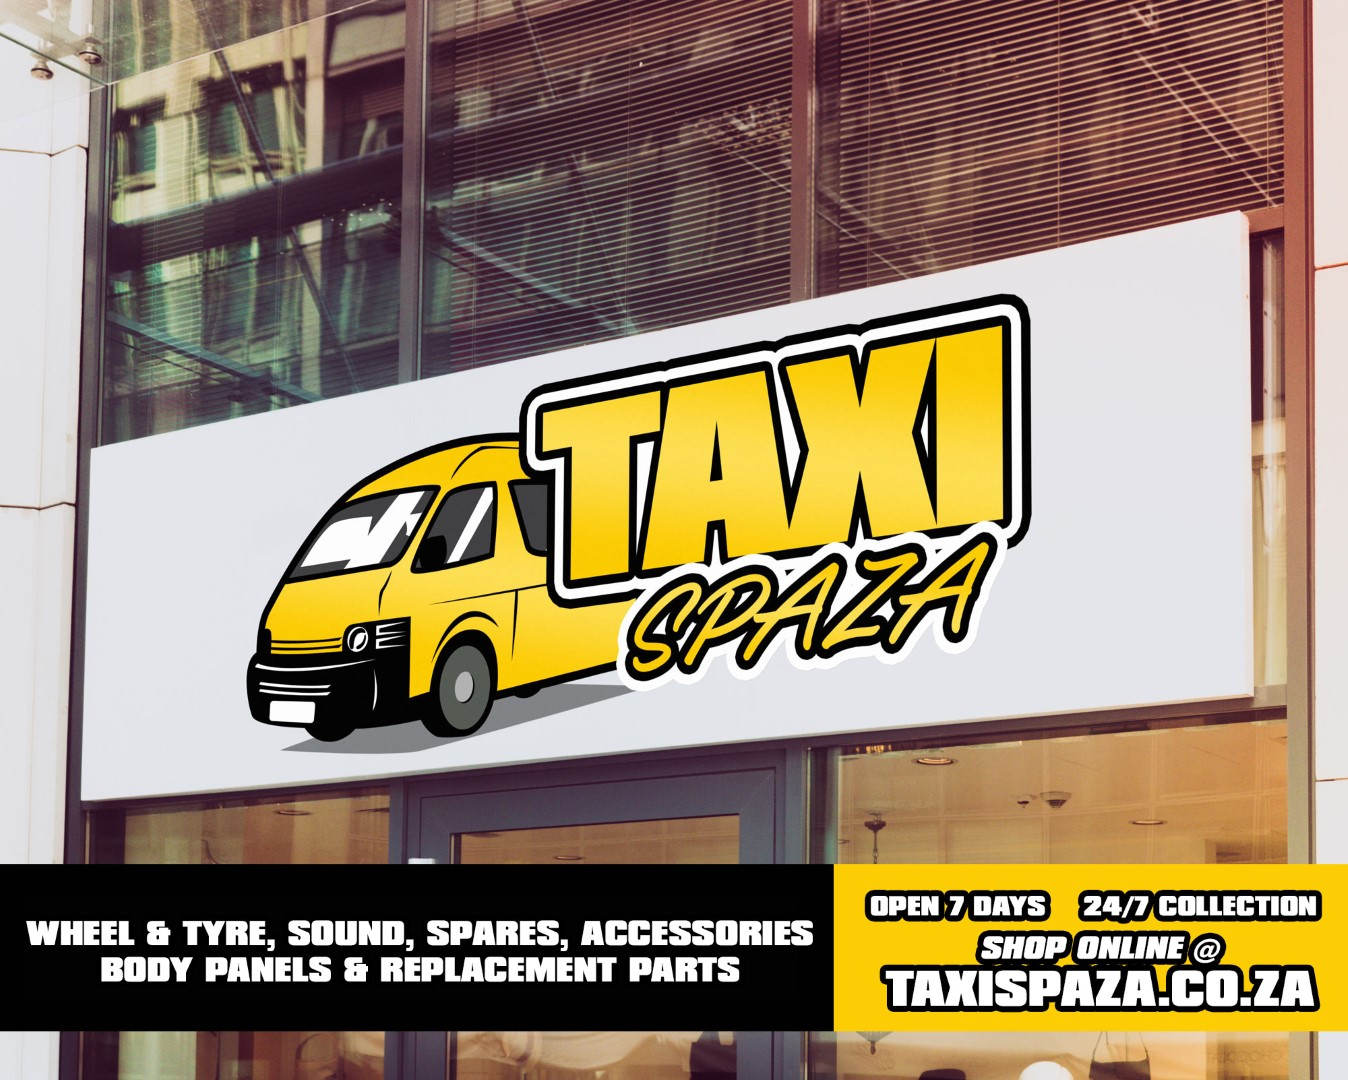 Sound, Audio, Radios MP3 , DVD players, Amplifiers, Subwoofers, Speakers, suitable for TOYOTA QUANTUM QUANTAM and other taxis.